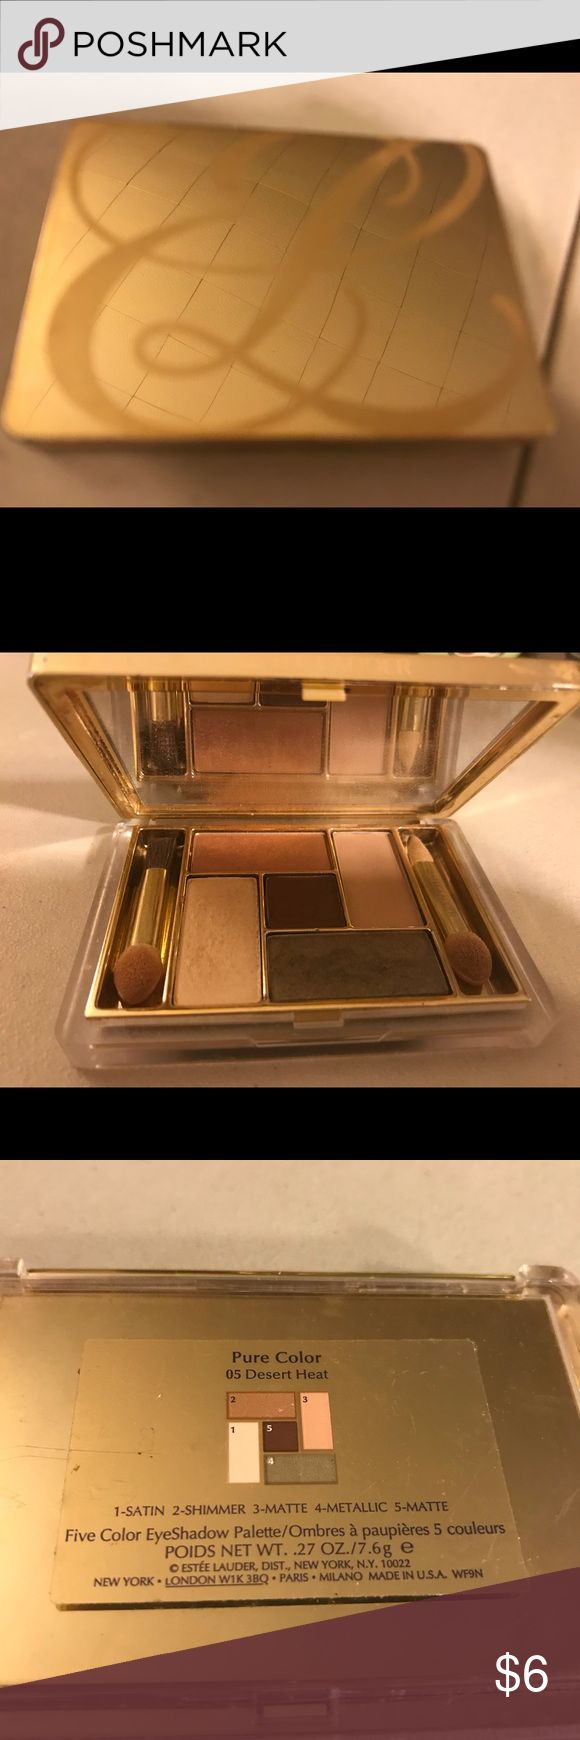 Estée Lauder pure color Estée Lauder pure color in color 05 desert heat, used. 5 different colors. Thanks for checking out Luxury1cosmetics!! Offers are welcomed, bundles are discounted!! Estee Lauder Makeup